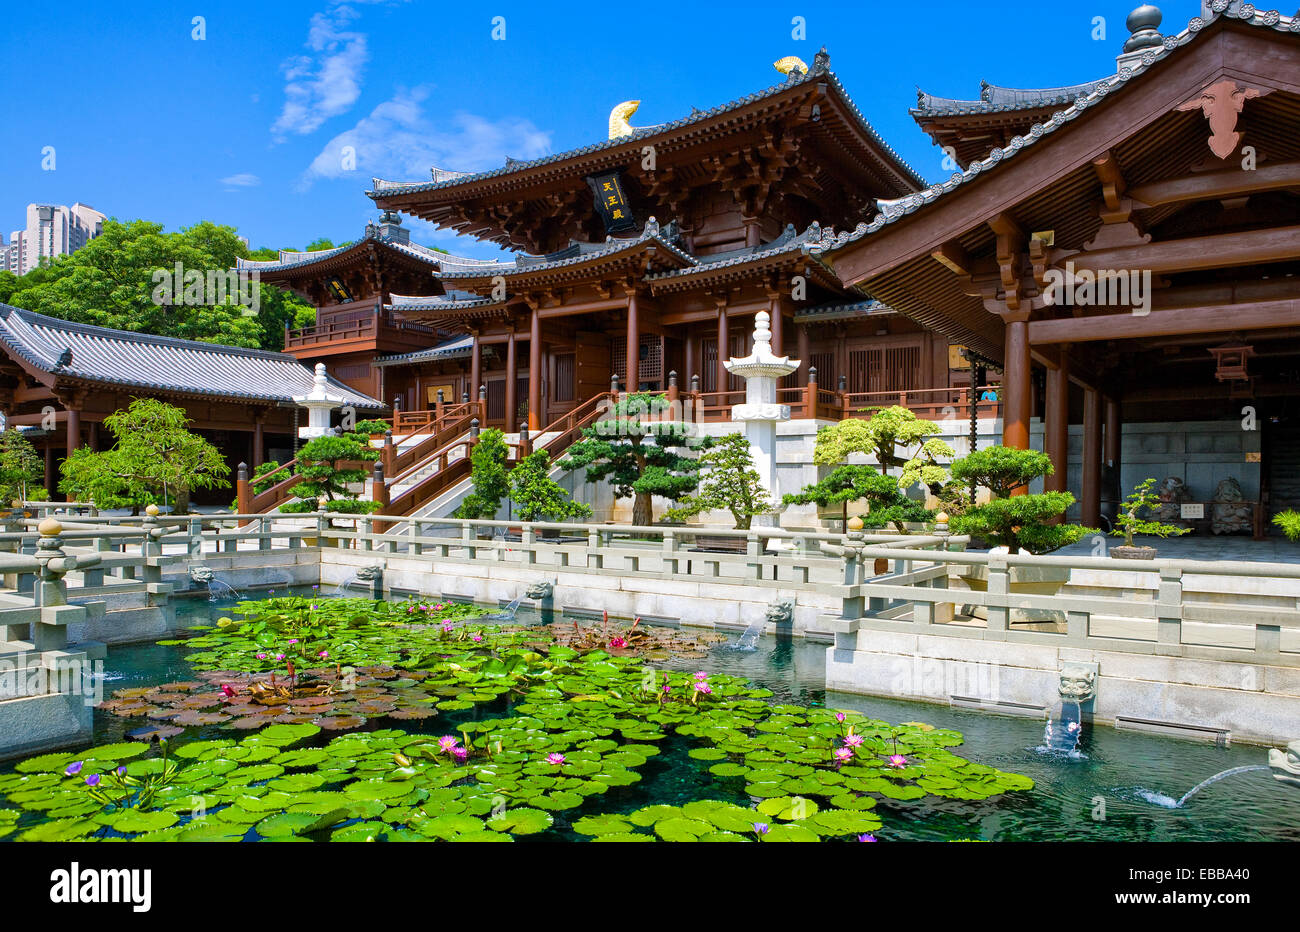 Hong Kong, the Chi Lin antique monastry in the new Kowloon quarter - Stock Image